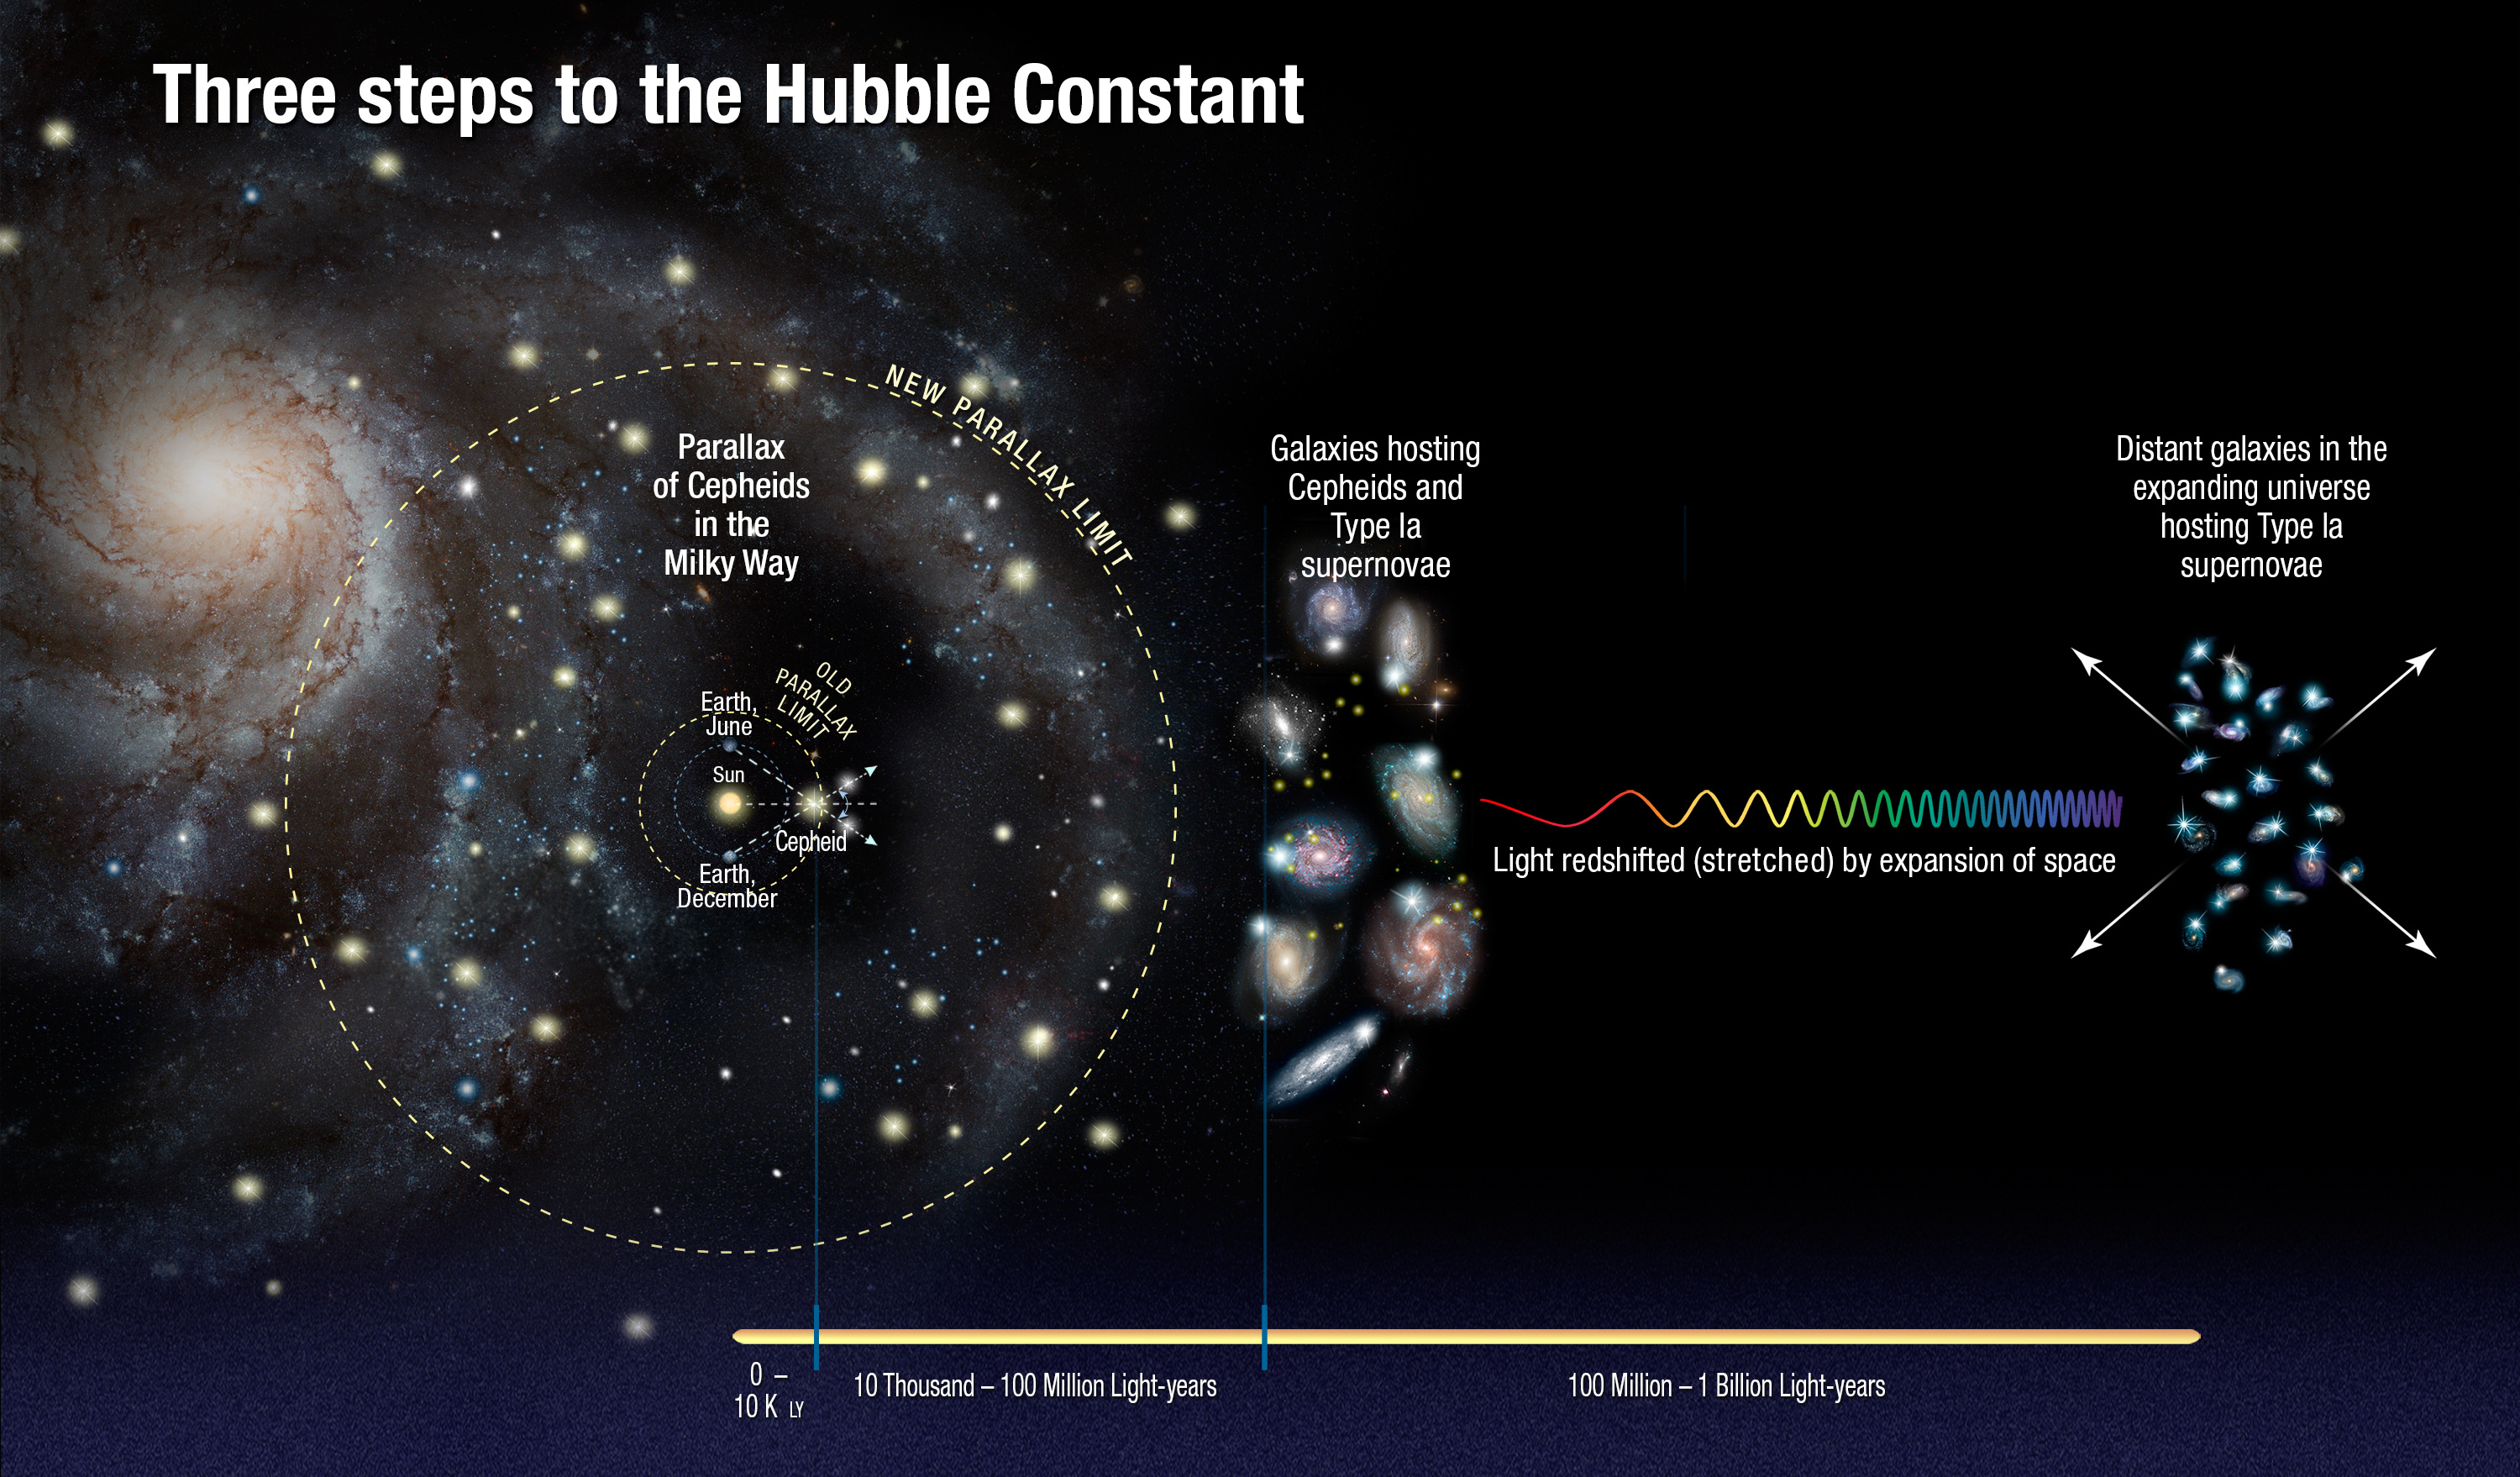 Astronomers used the Hubble Space Telescope to measure the distances to a class of pulsating stars called Cepheid variables to calibrate their true brightness, so that they could be used as cosmic yardsticks to measure distances to galaxies much farther away. This method is more precise than the classic parallax technique. Image credit: NASA, ESA, A. Feild (STScI), and A. Riess (STScI/JHU).